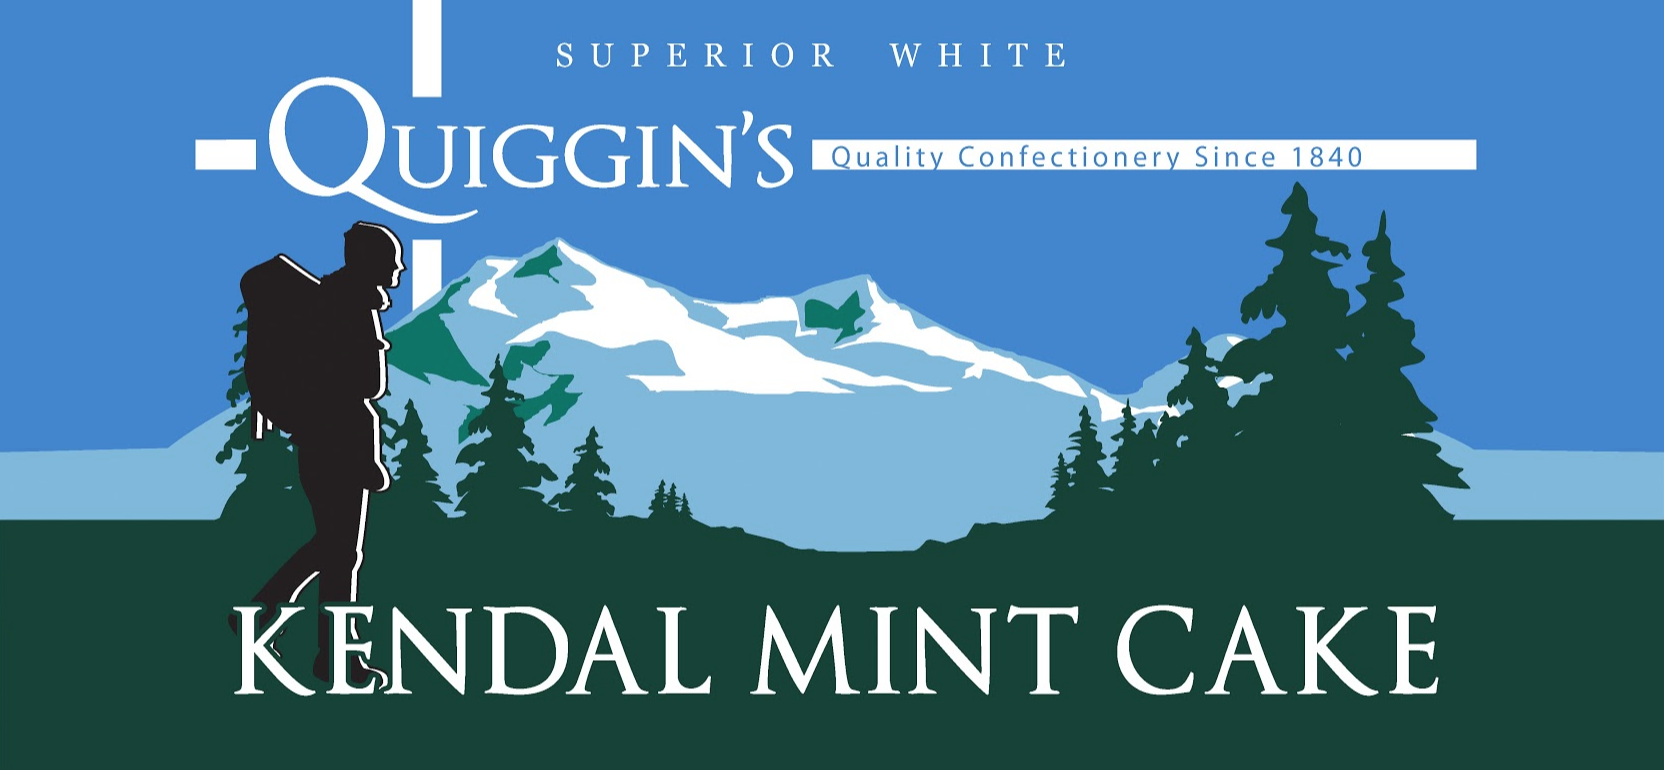 Quiggin's Kendal Mint Cake Now Available To Purchase Online